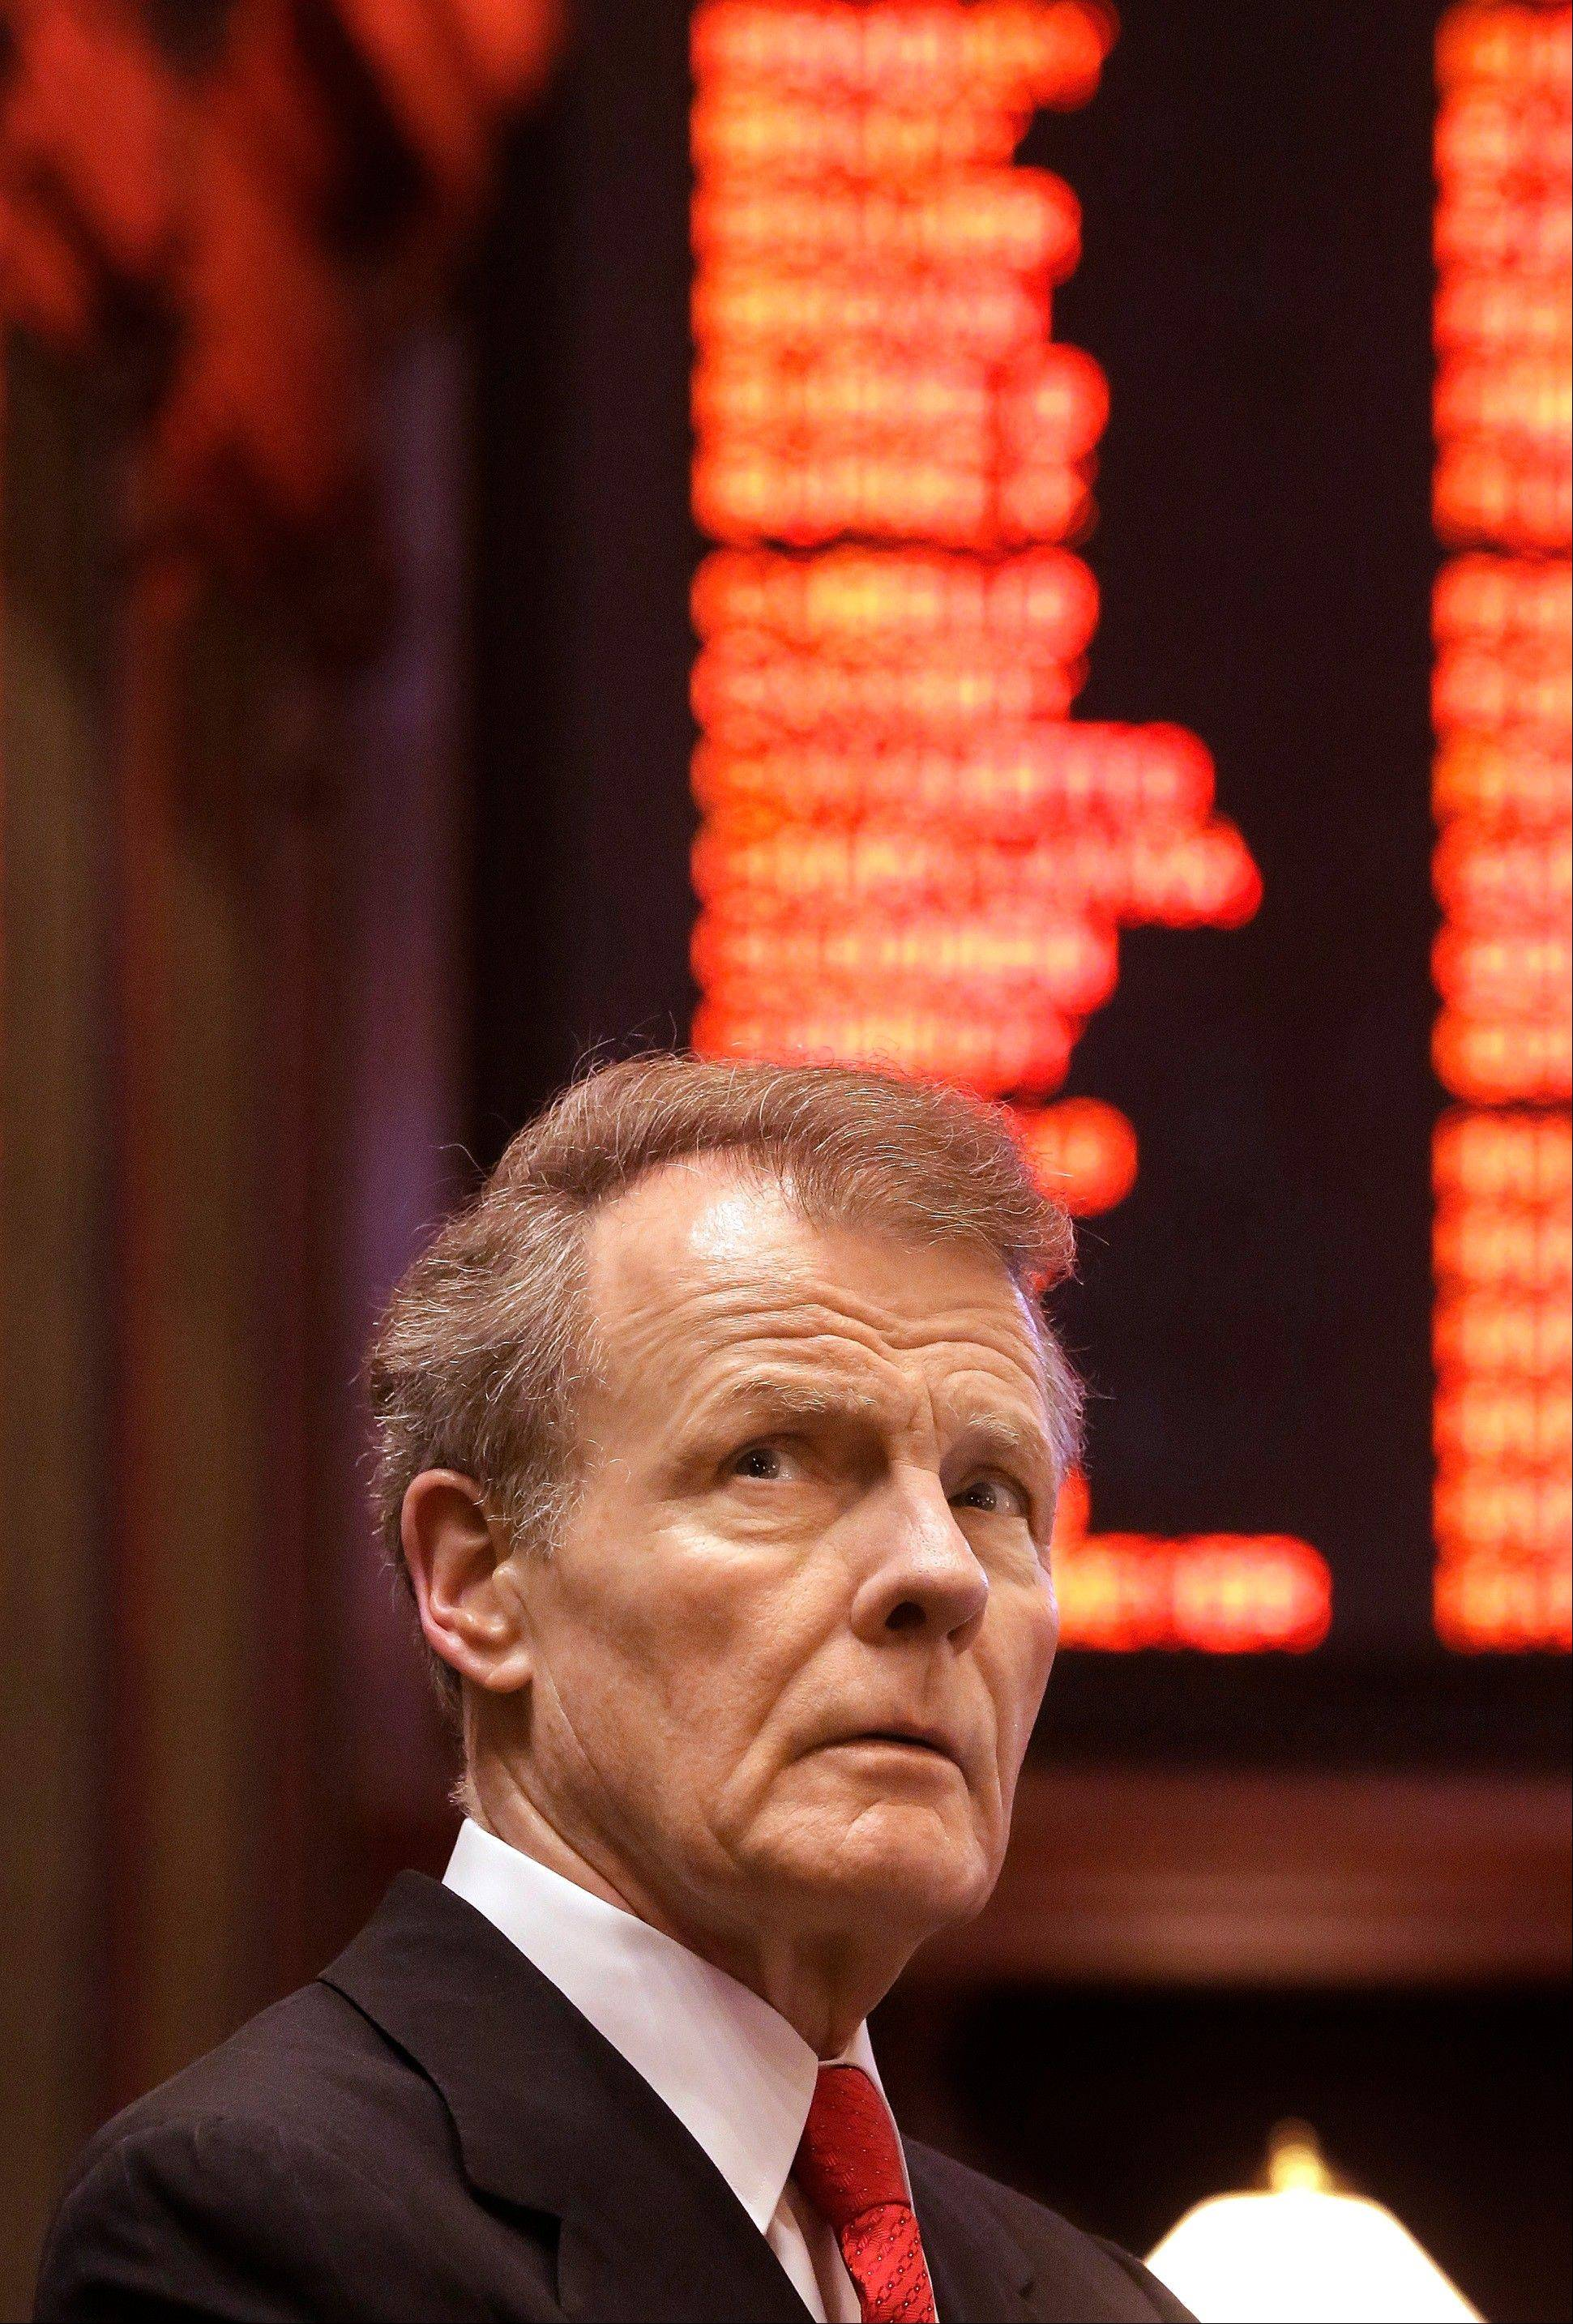 House Speaker Michael Madigan�s pension legislation, which Gov. Pat Quinn supports, passed in the House but failed in the Senate this spring.